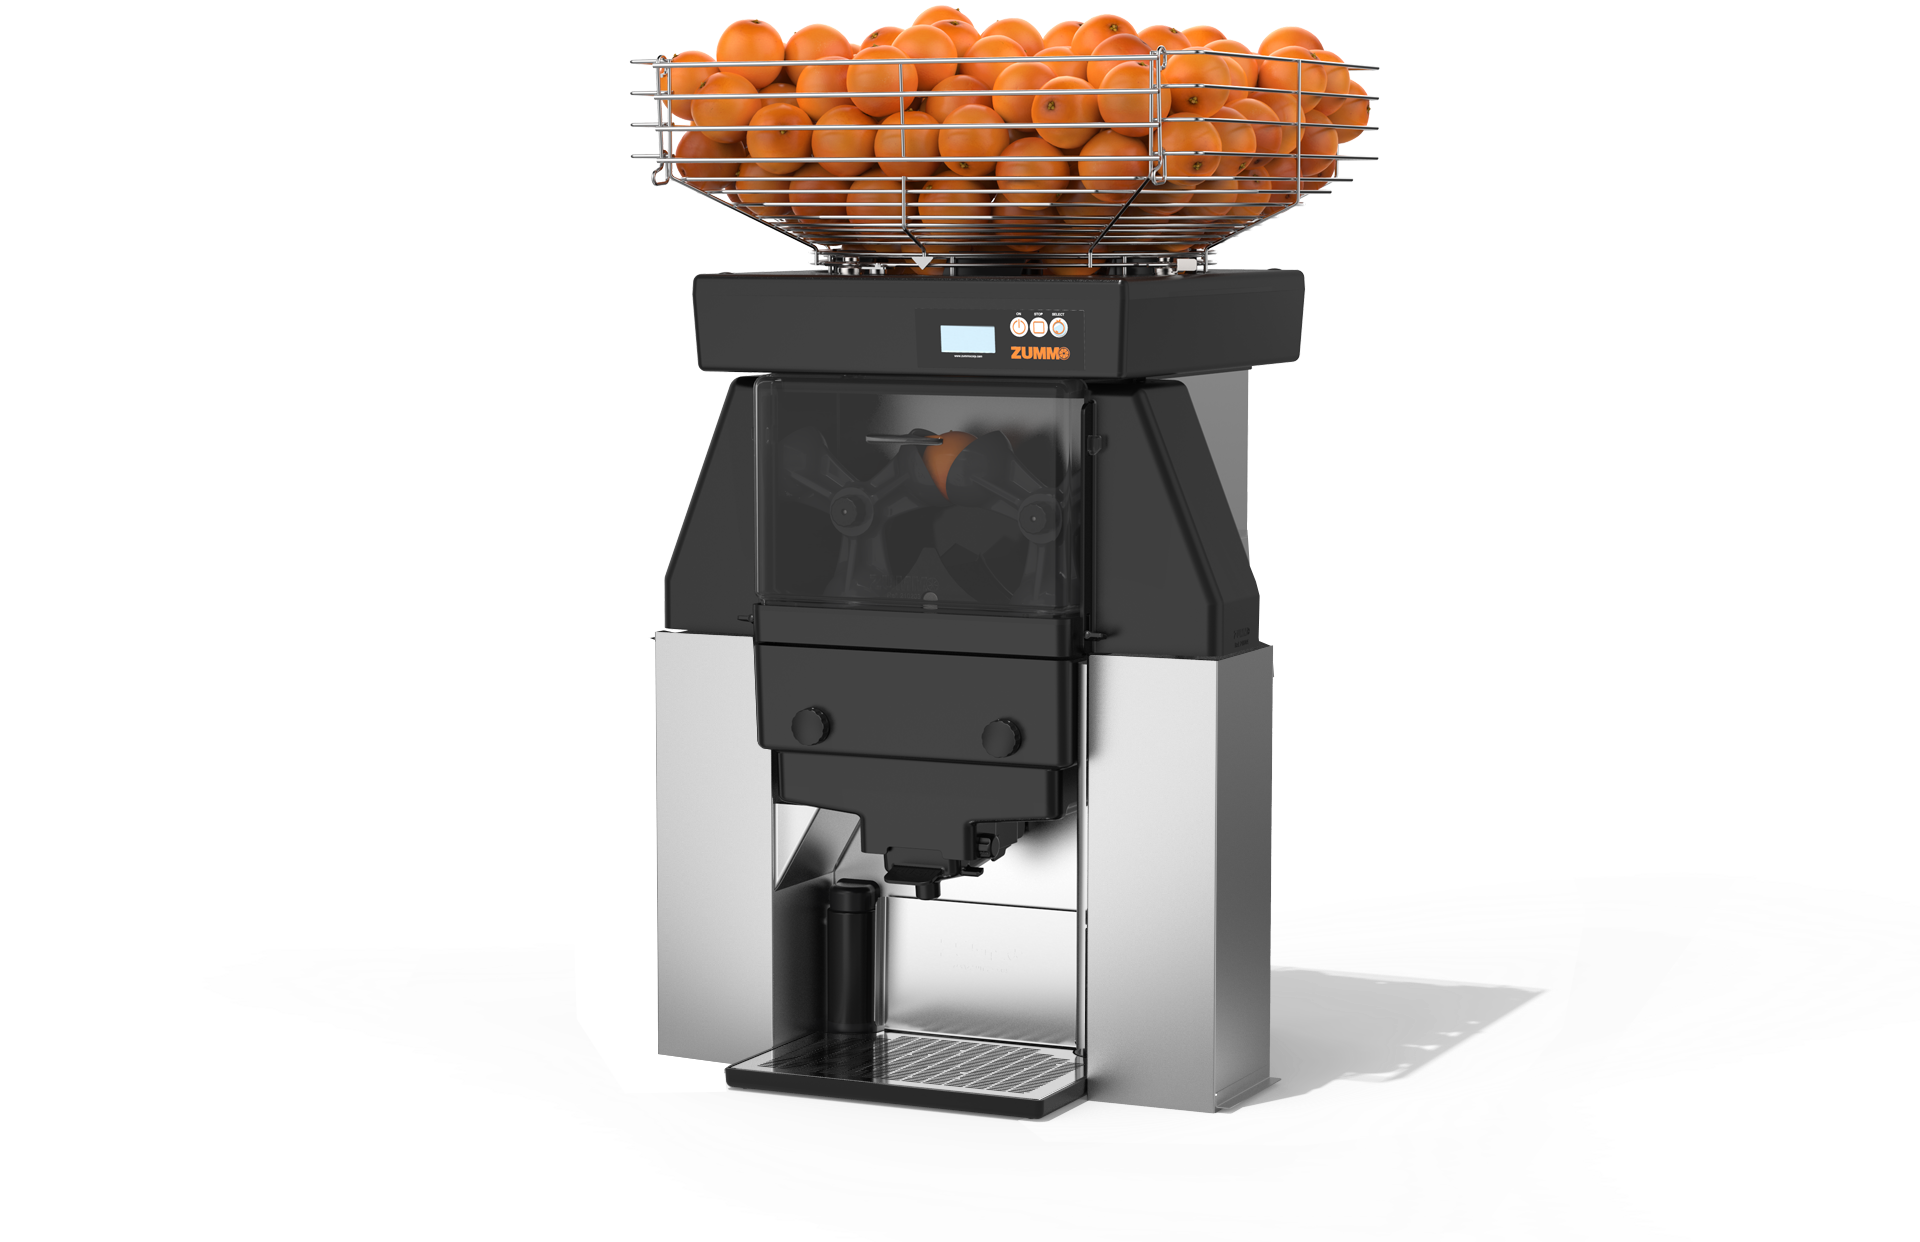 Zummo, launches new Z40 Nature Adapt juicer